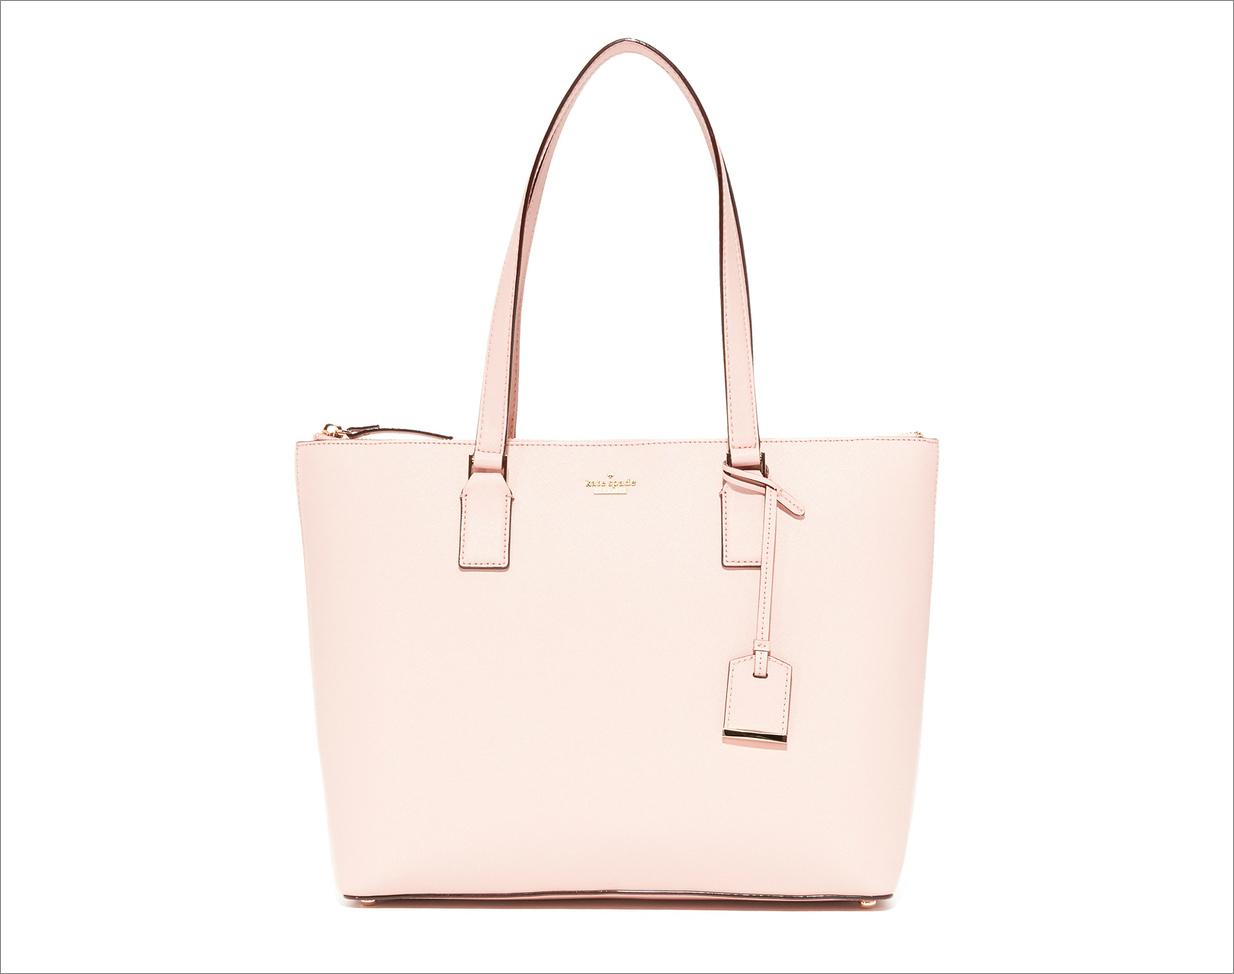 Kate Spade New York pink Lucie tote bag purse Mother's Day gift ideas